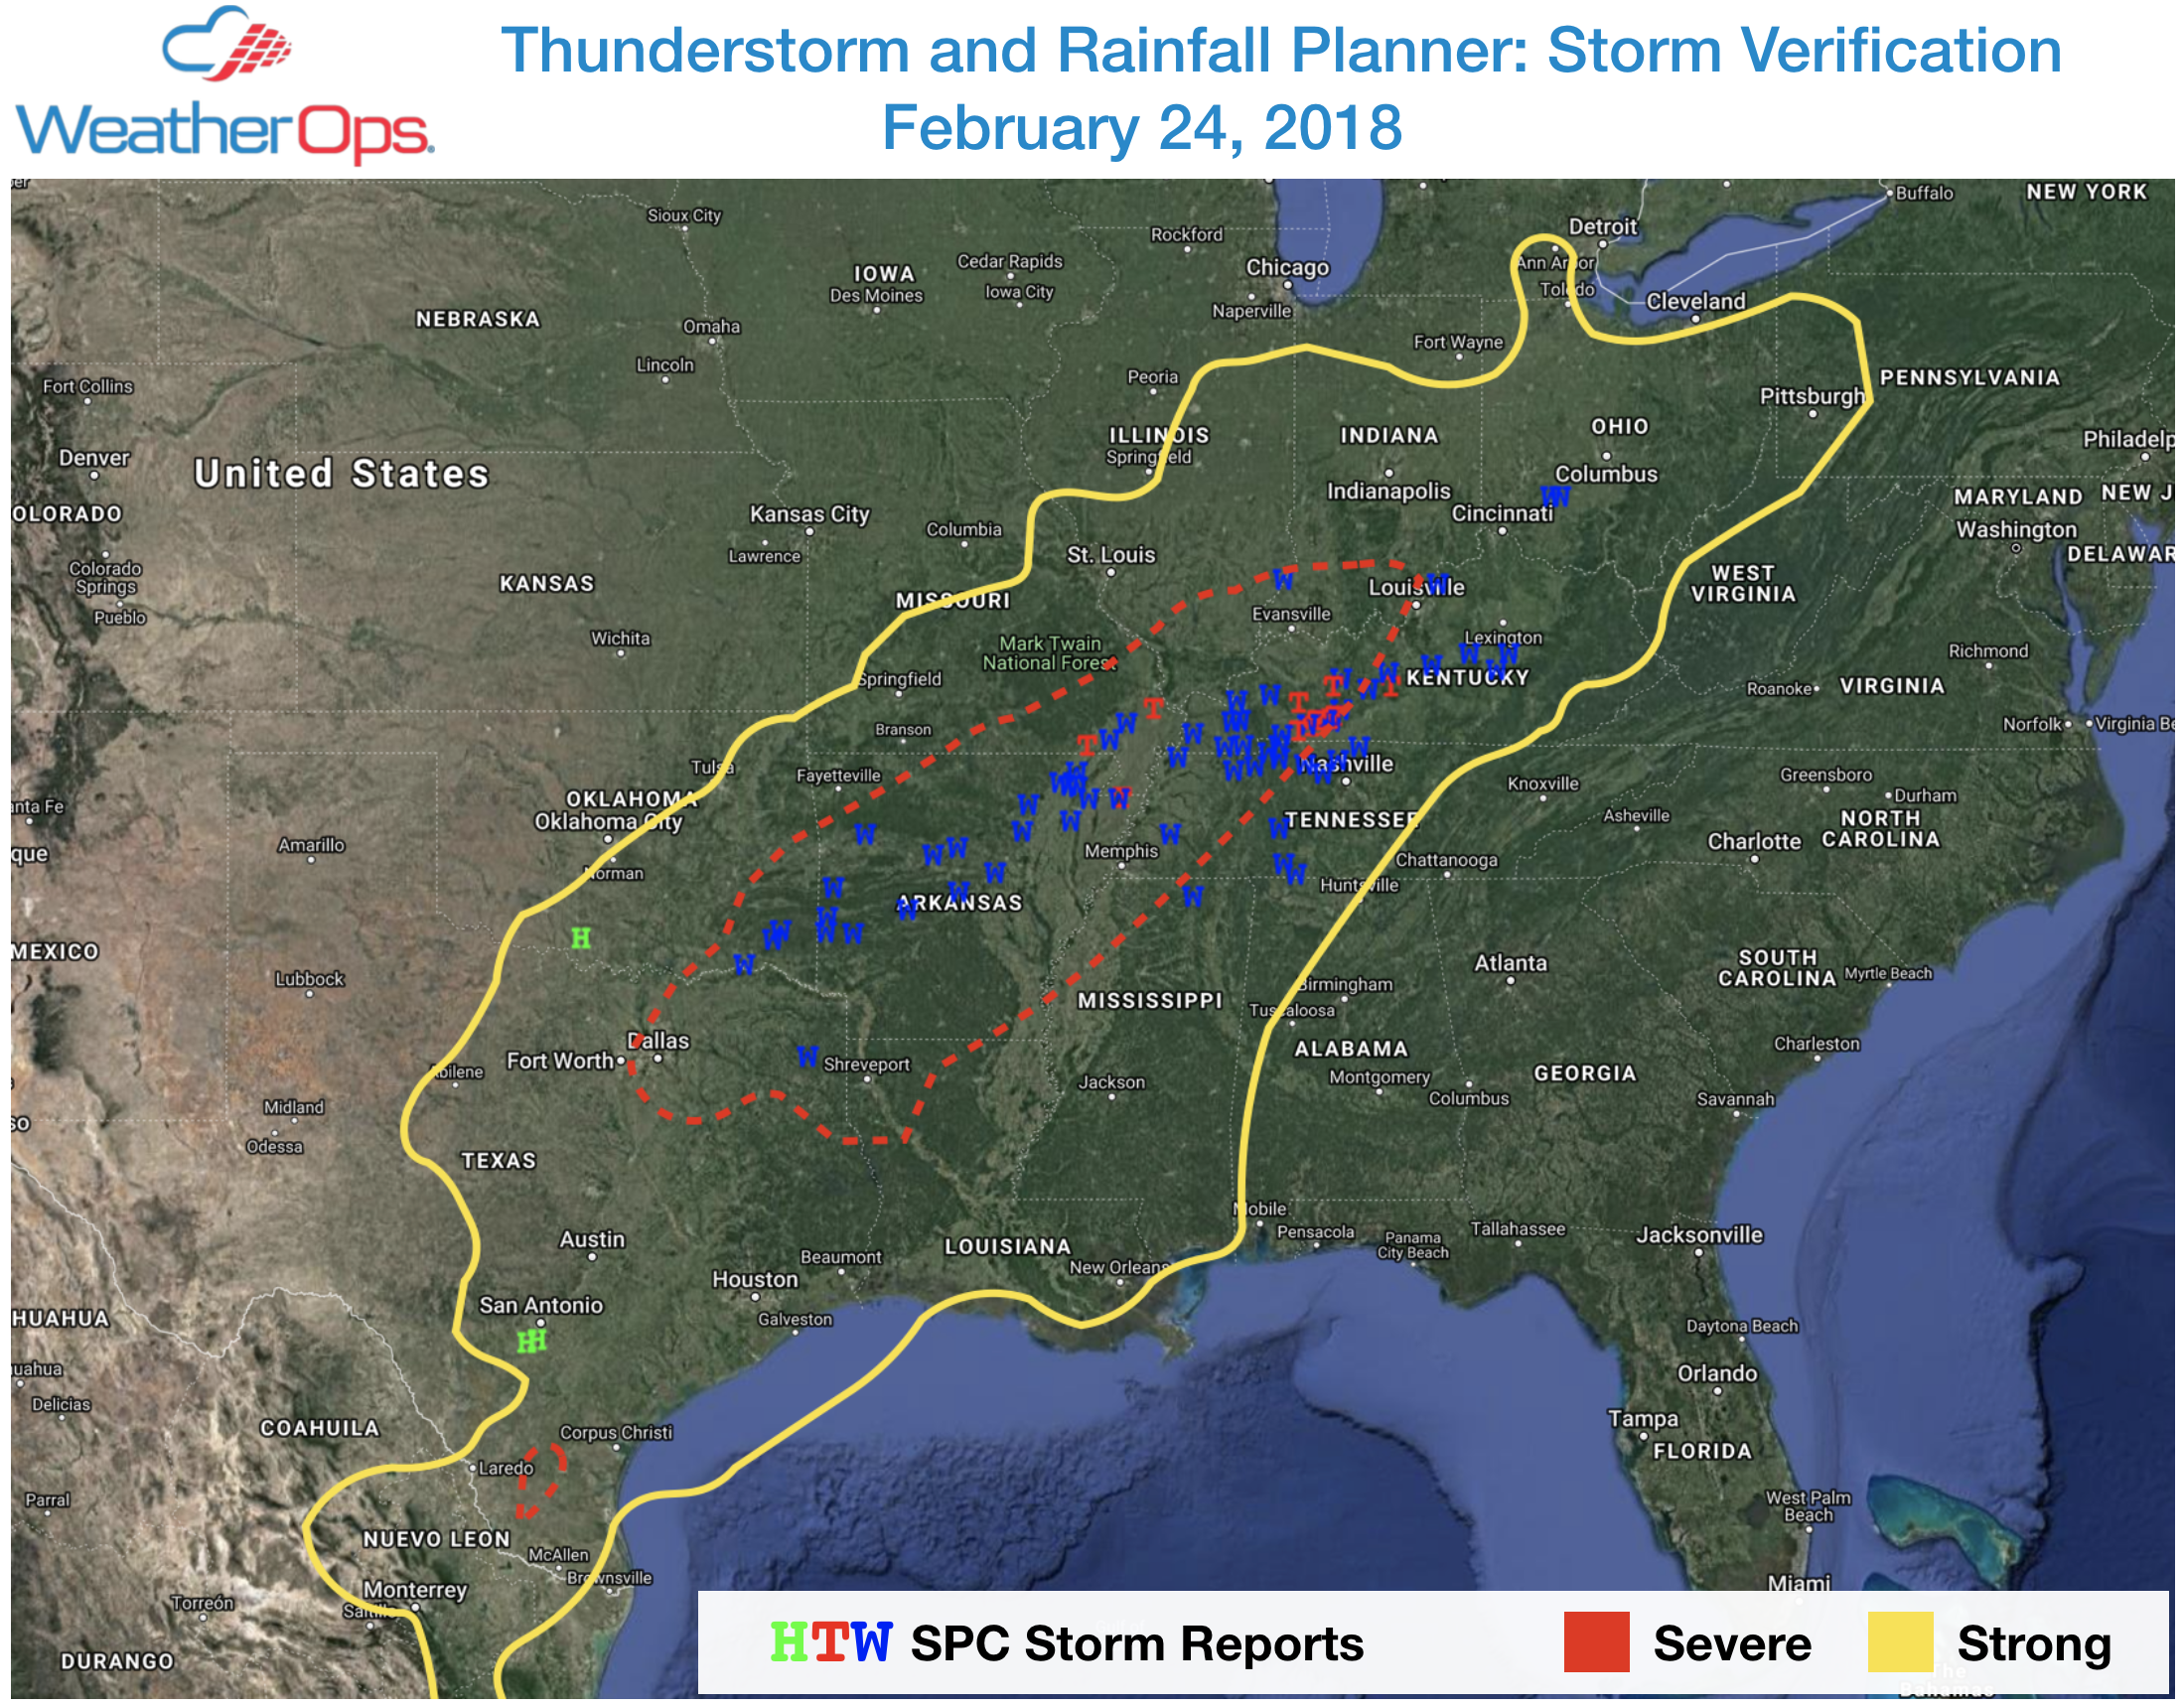 Thunderstorm Planner Verification 24 Feb 2018